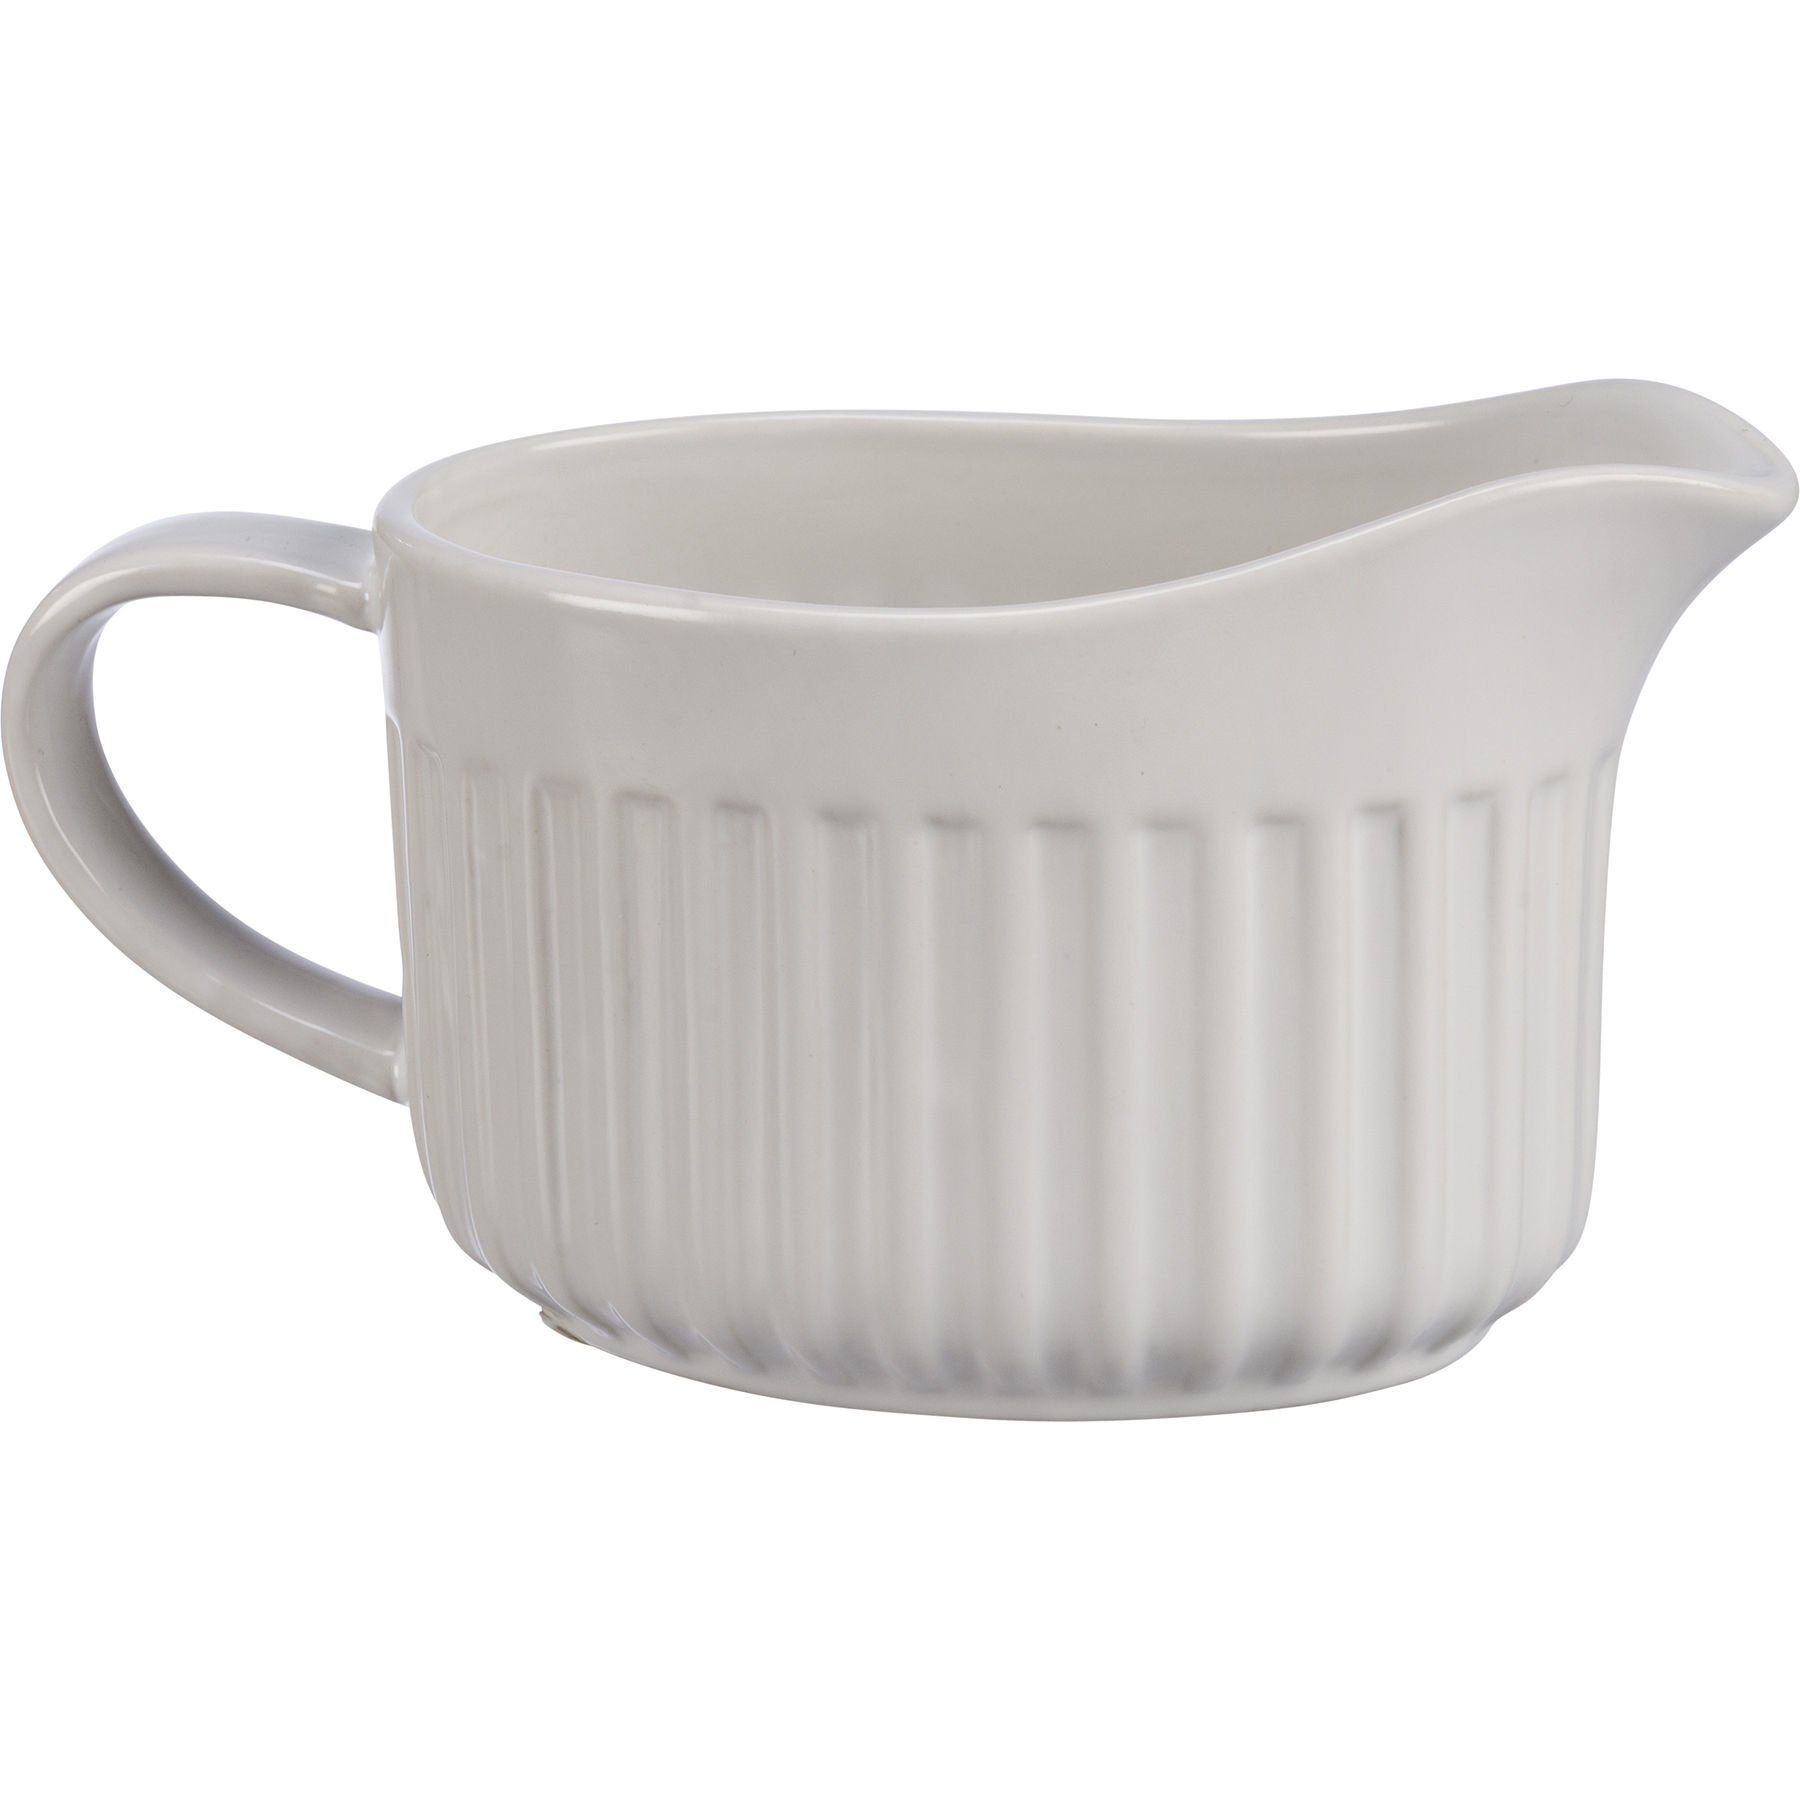 Gravy Boat - Awesome Sauce by Primitives by Kathy